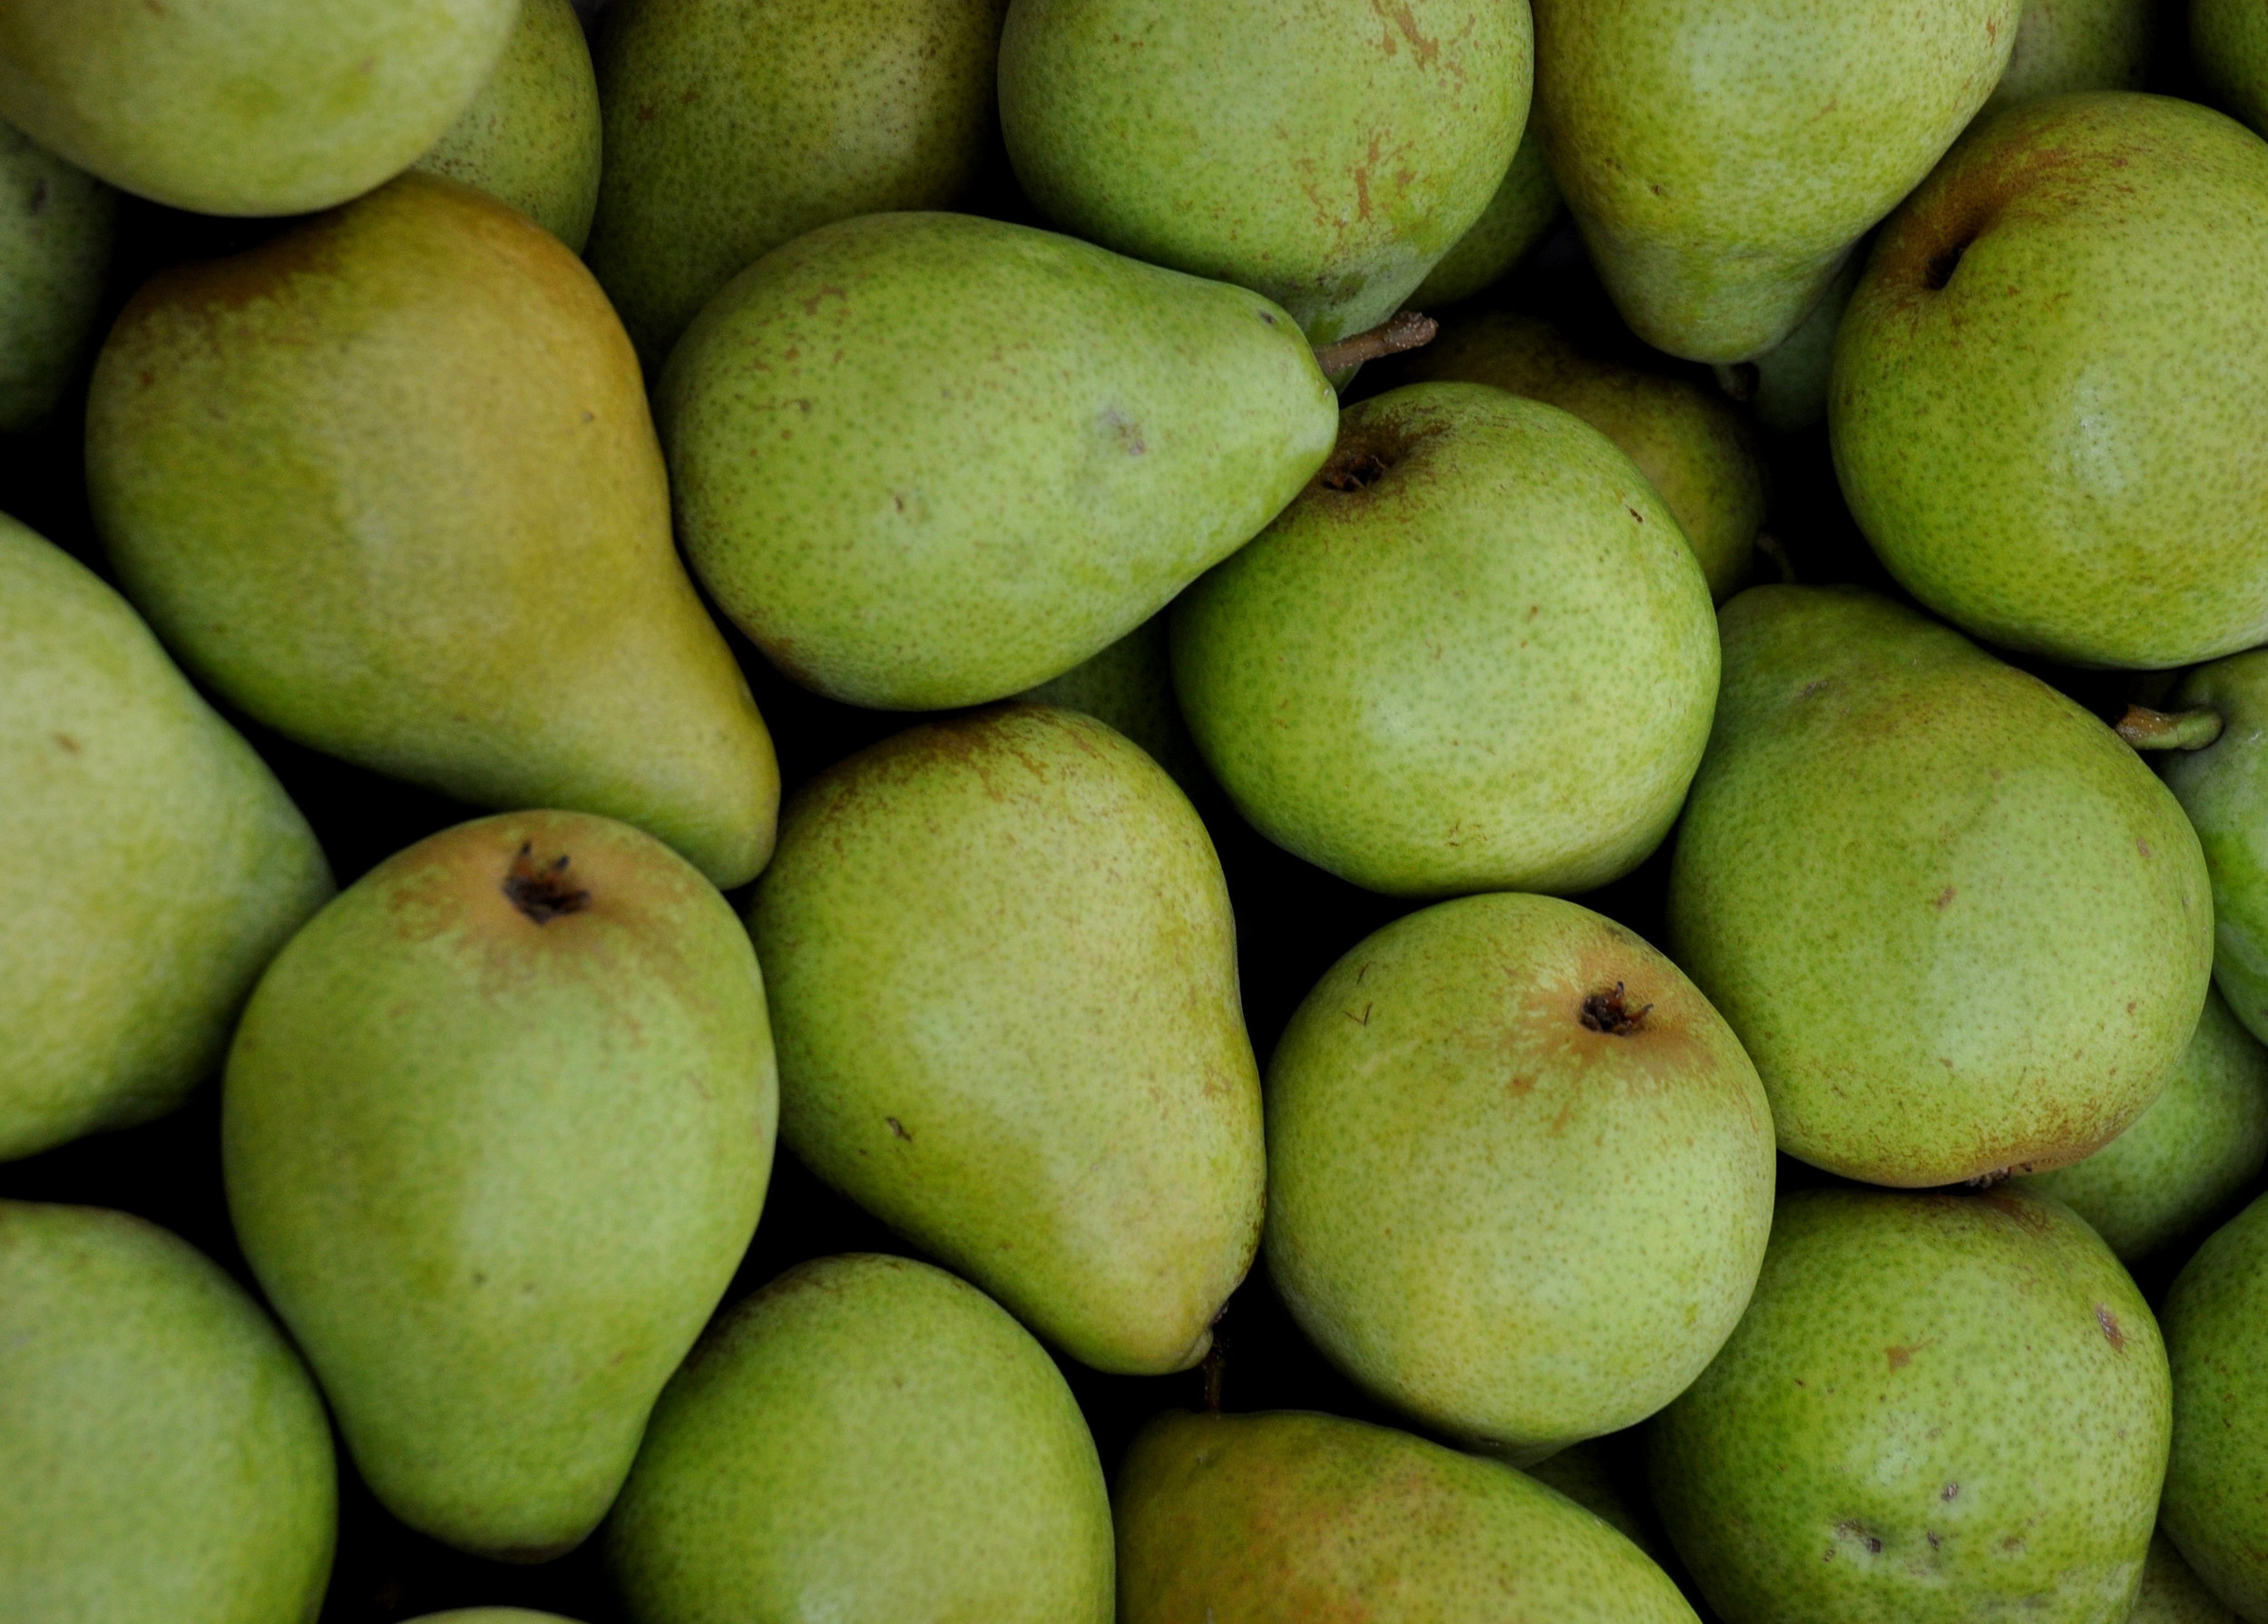 D'Anjou pears from Booth Canyon Orchards at Ballard Farmers Market. Copyright Zachary D. Lyons.